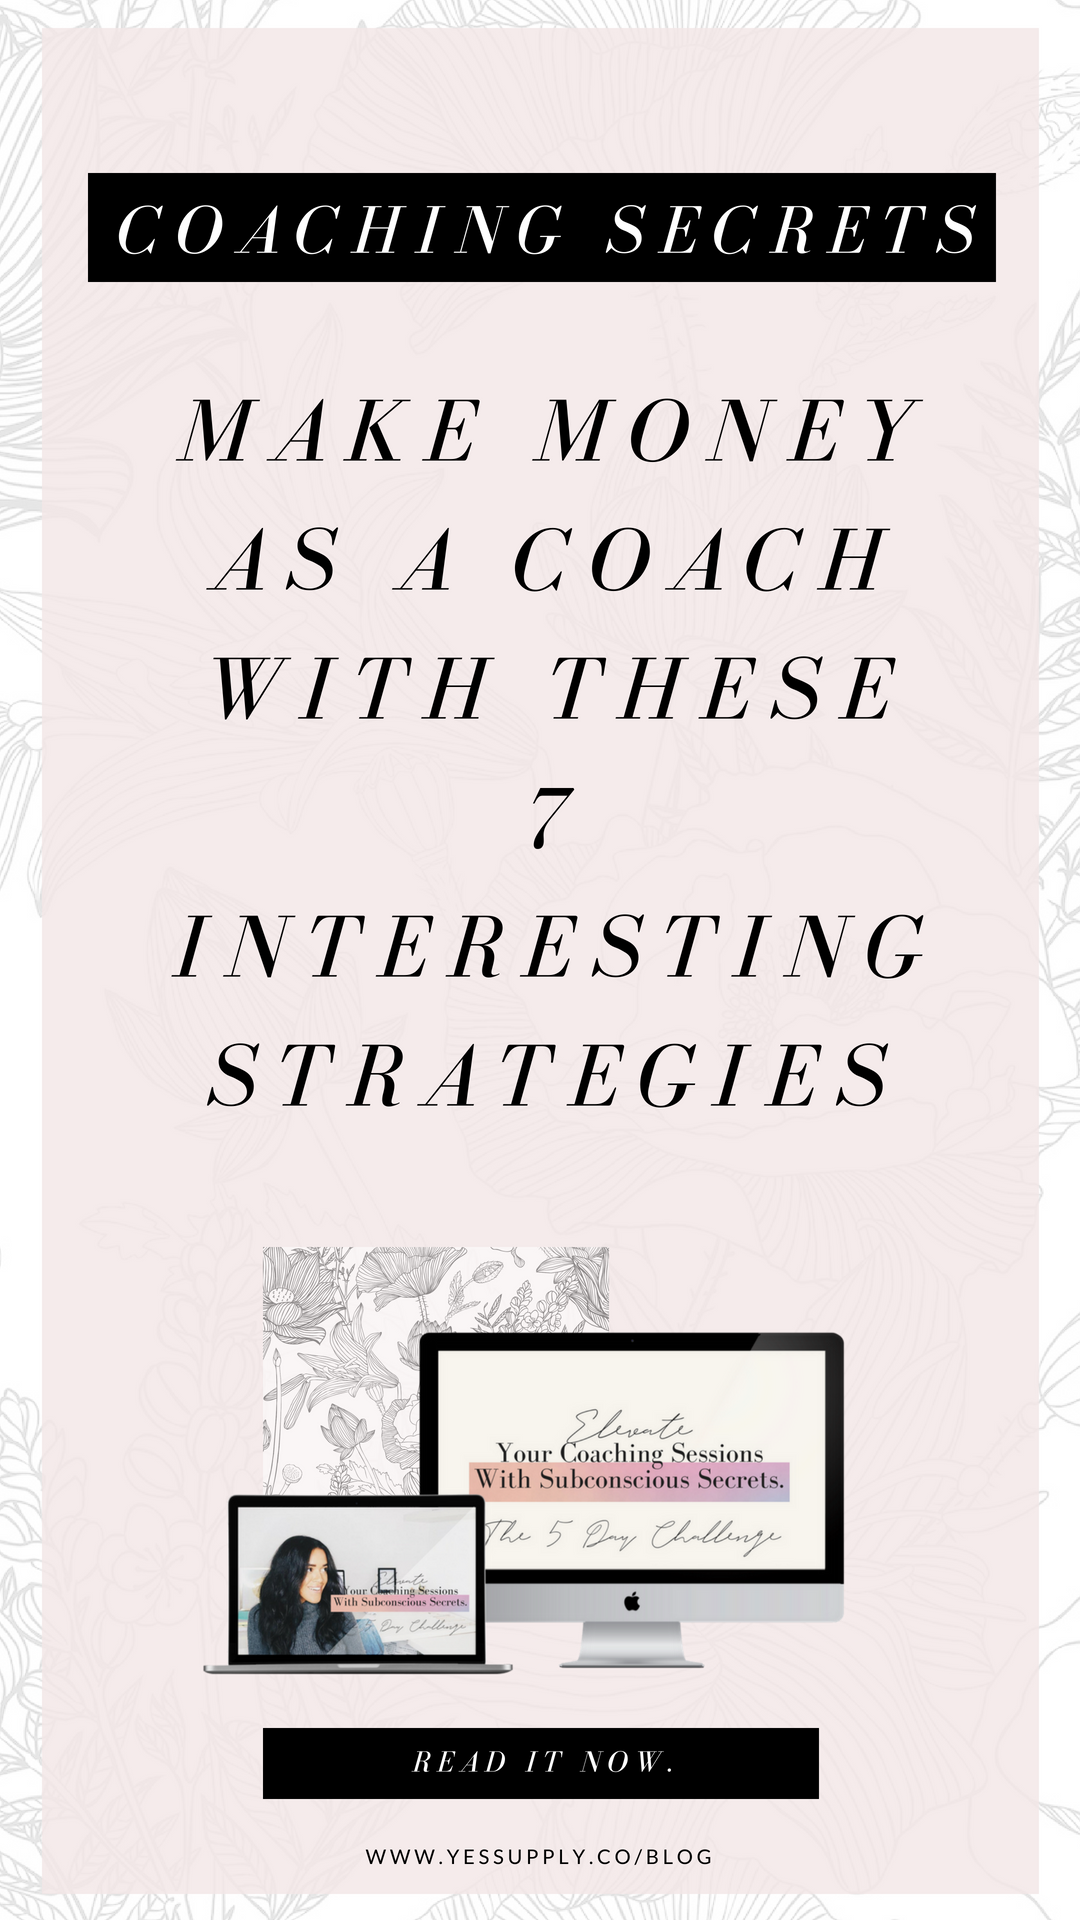 Wondering how you can make money as a coach and become a successful coach? Learn how to create multiple streams of income with these strategies.